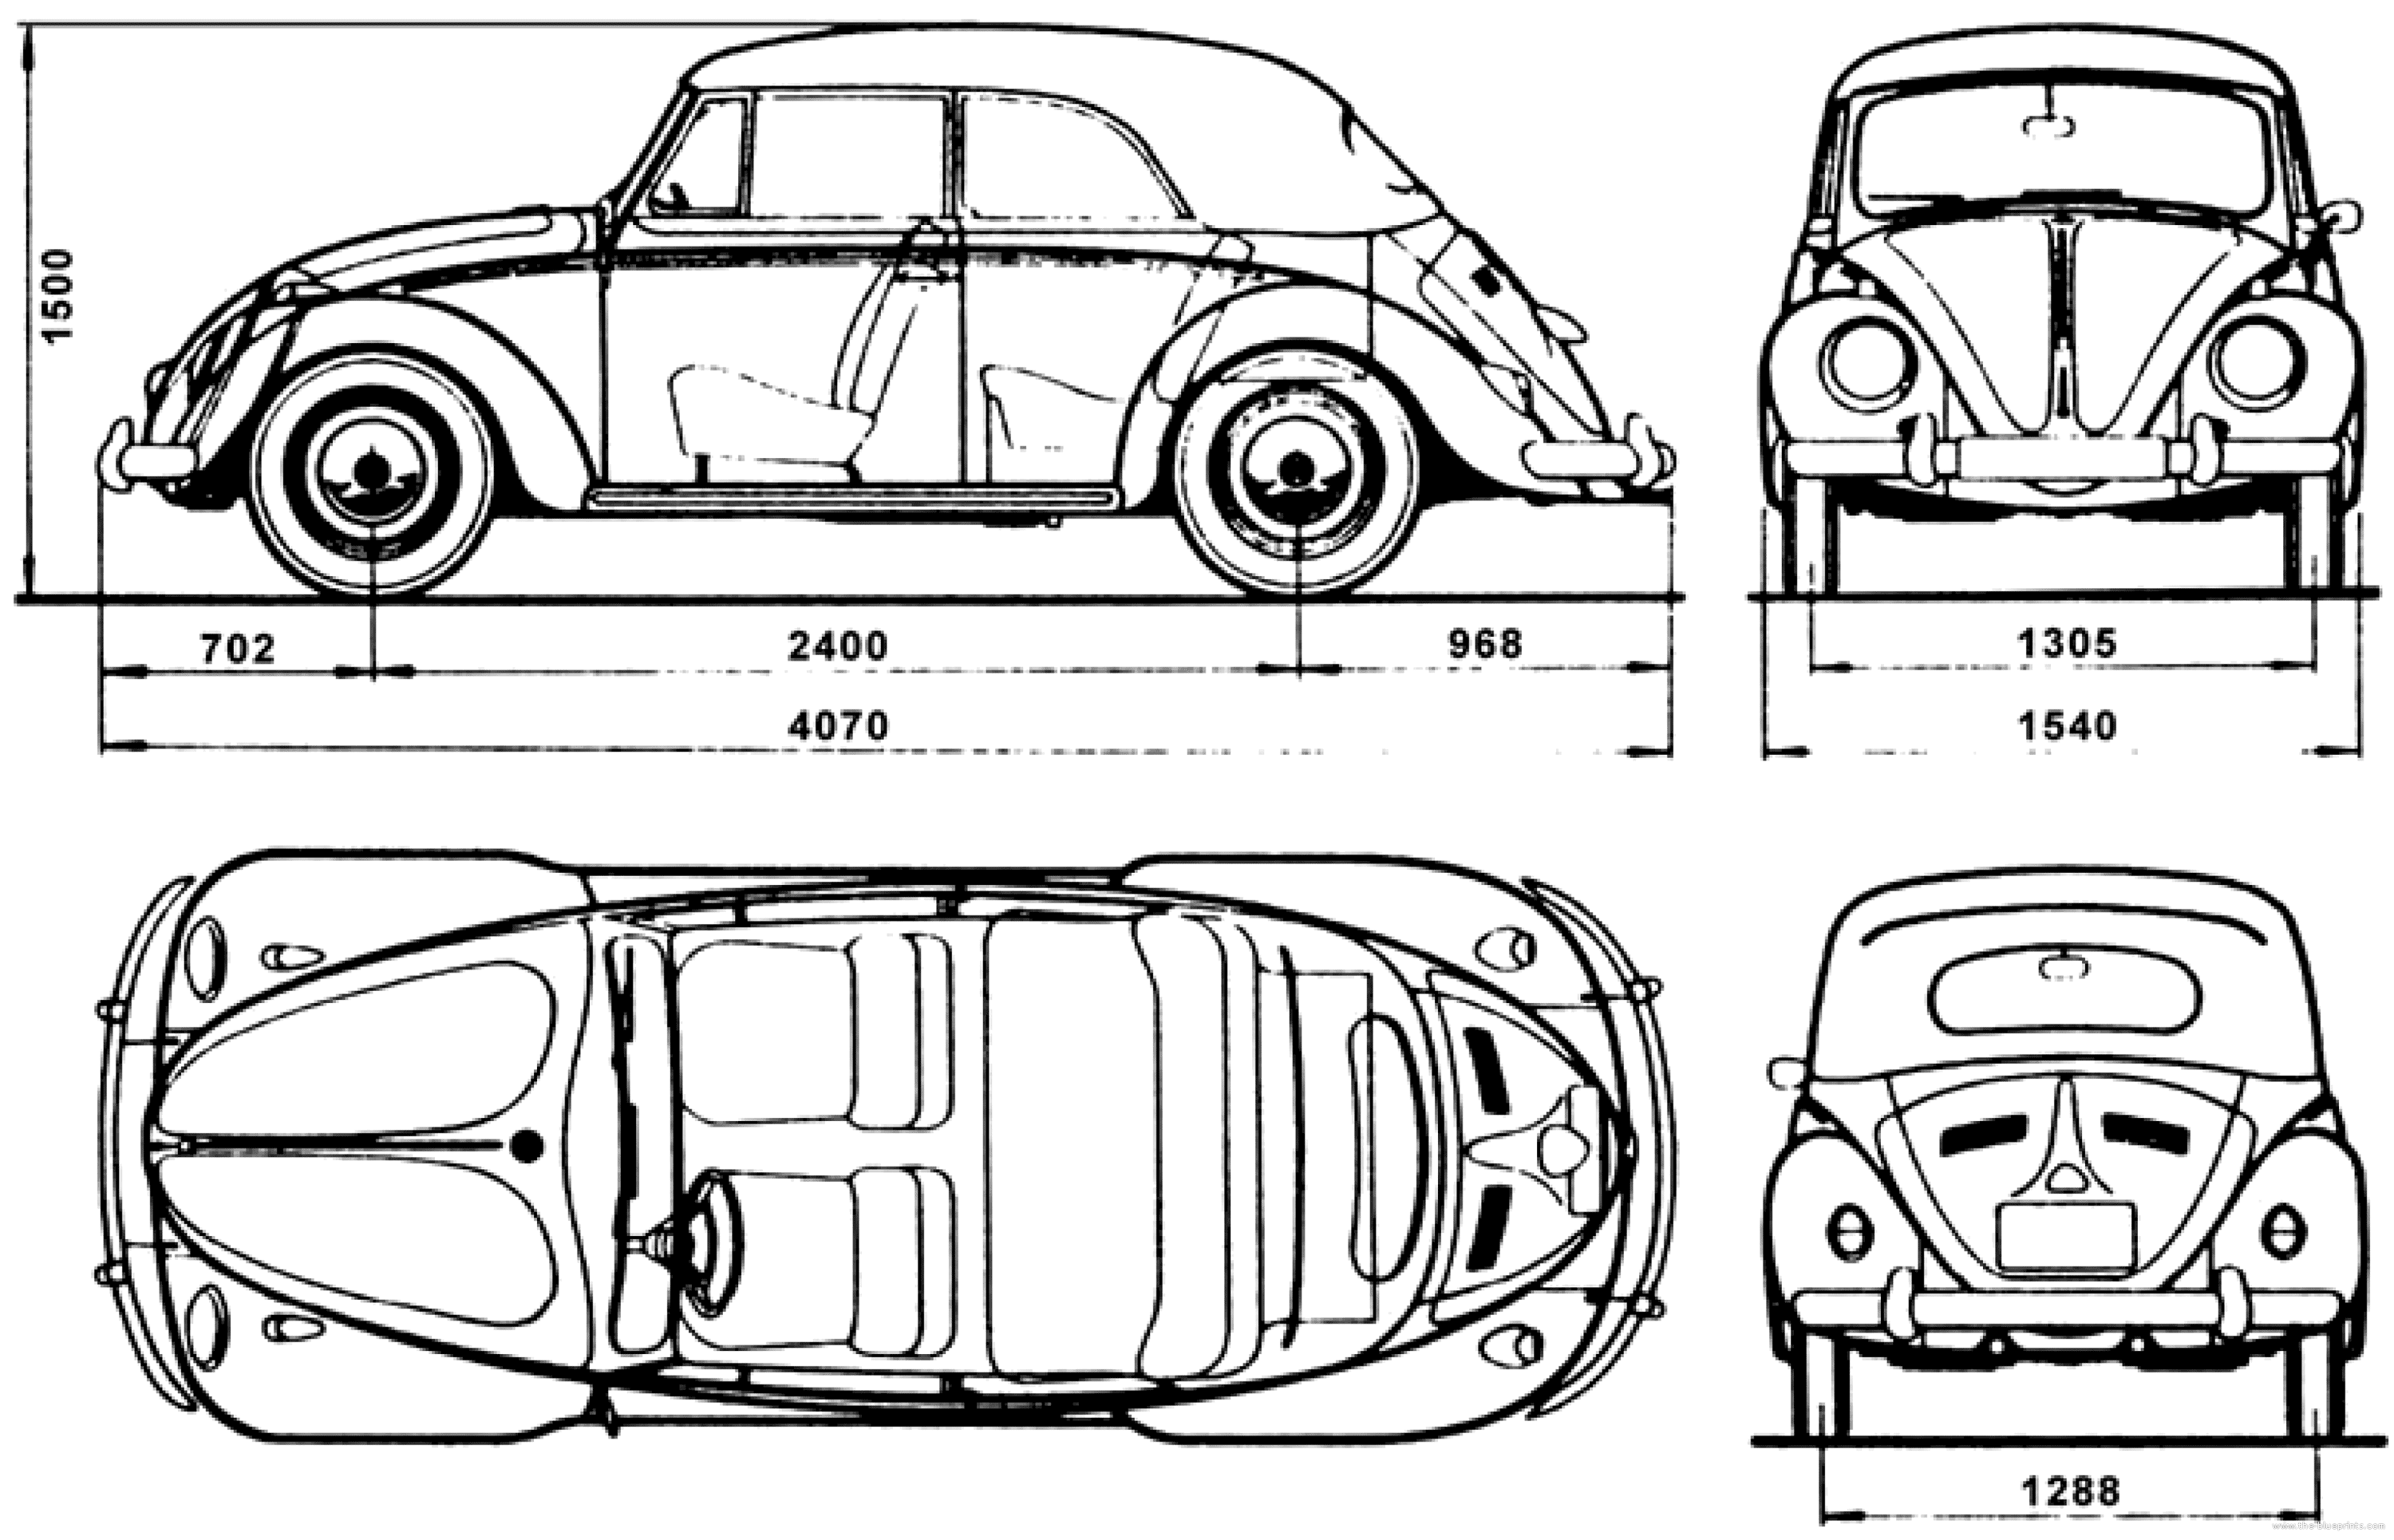 Volkswagen Beetle Body Dimensions